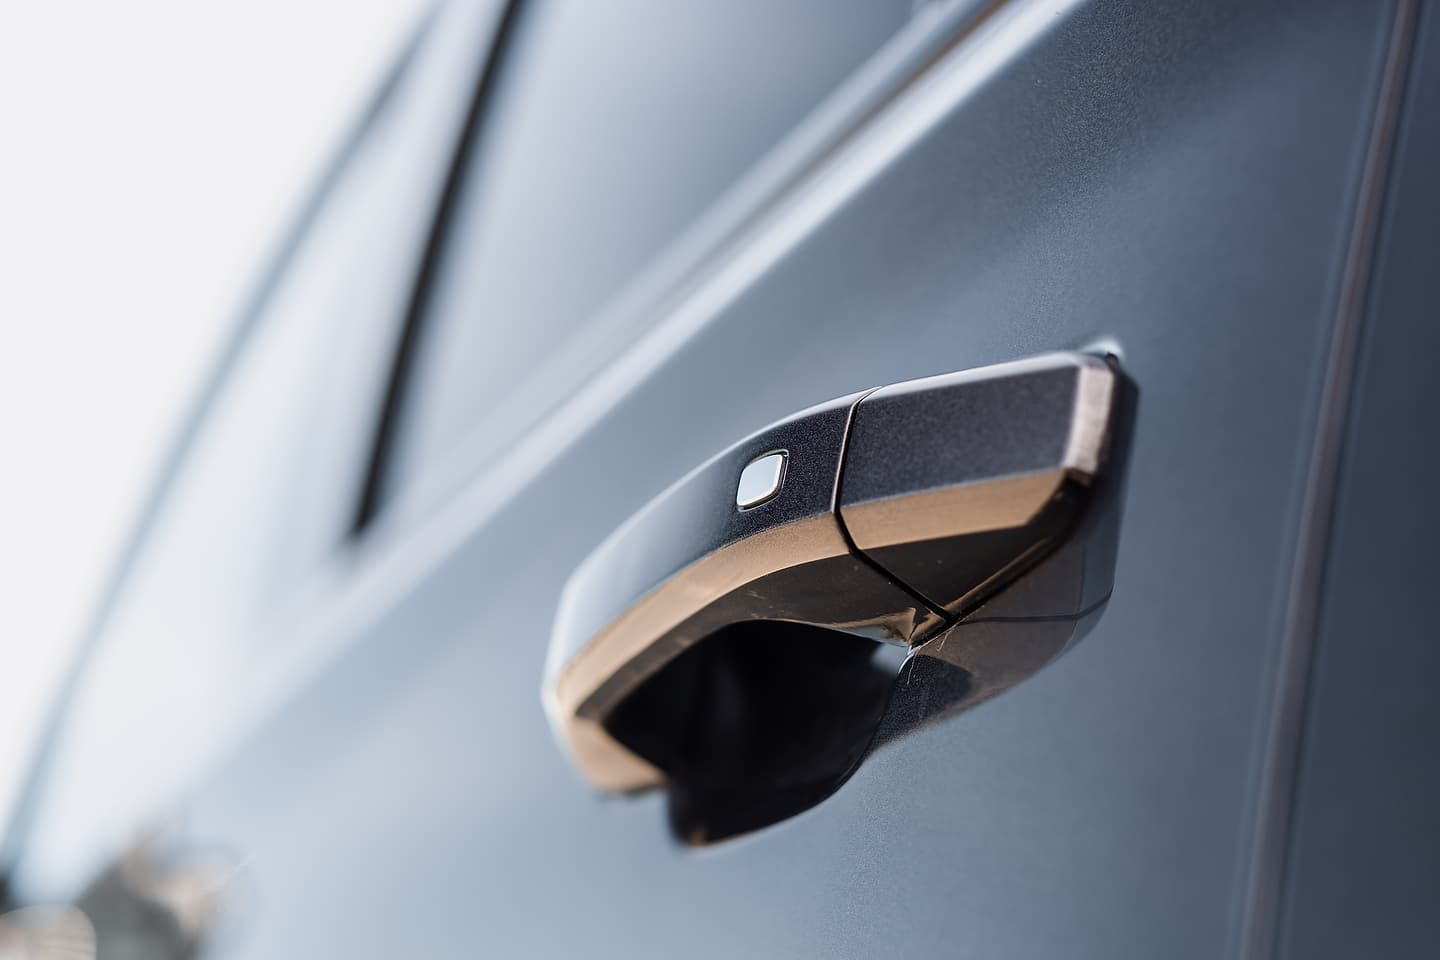 2018 Chevrolet Tahoe Premier RST door handle